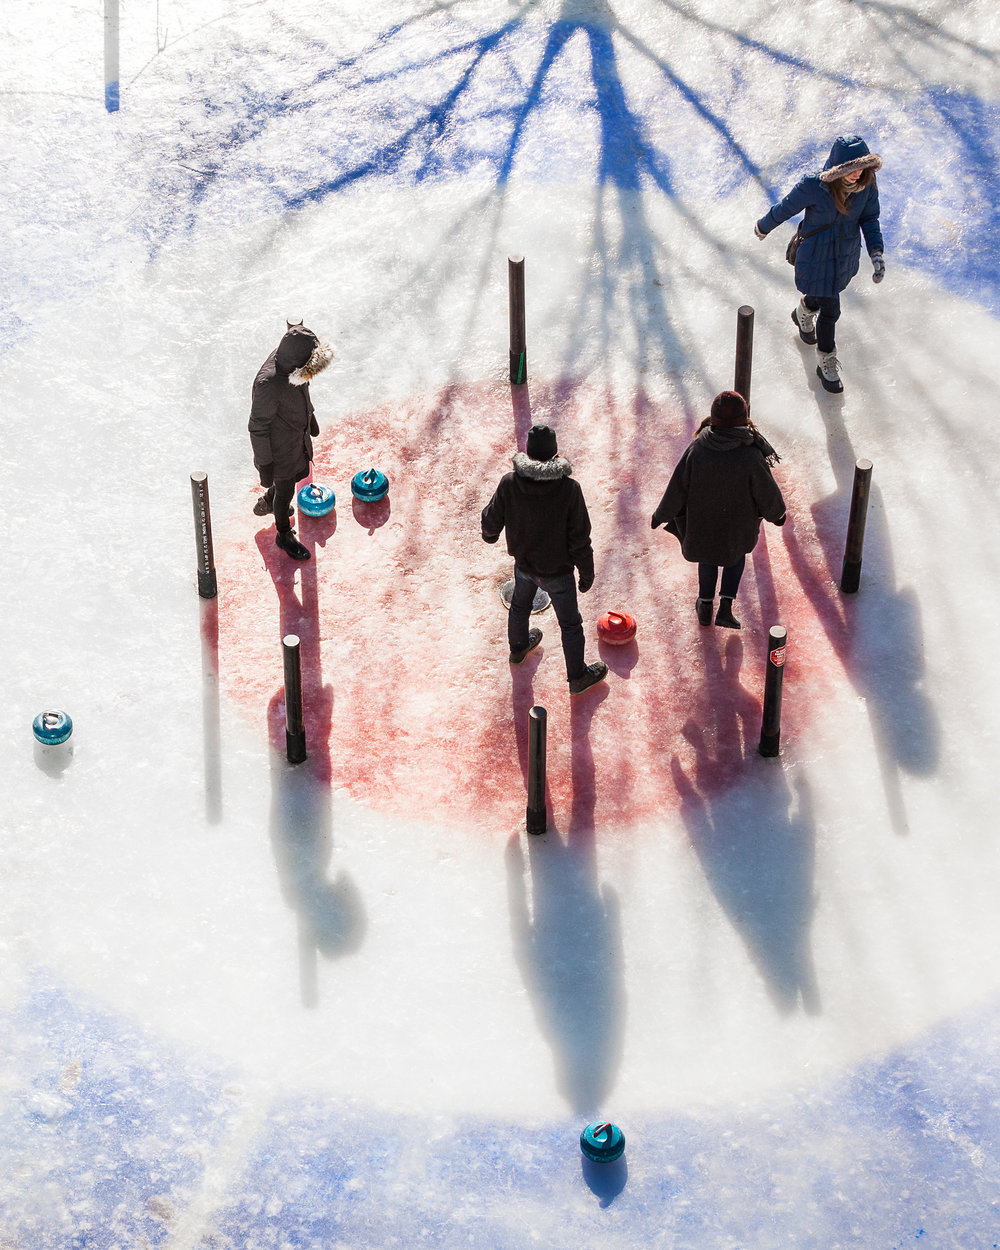 Crokicurl_04_photo by Station Point Photographic.jpg